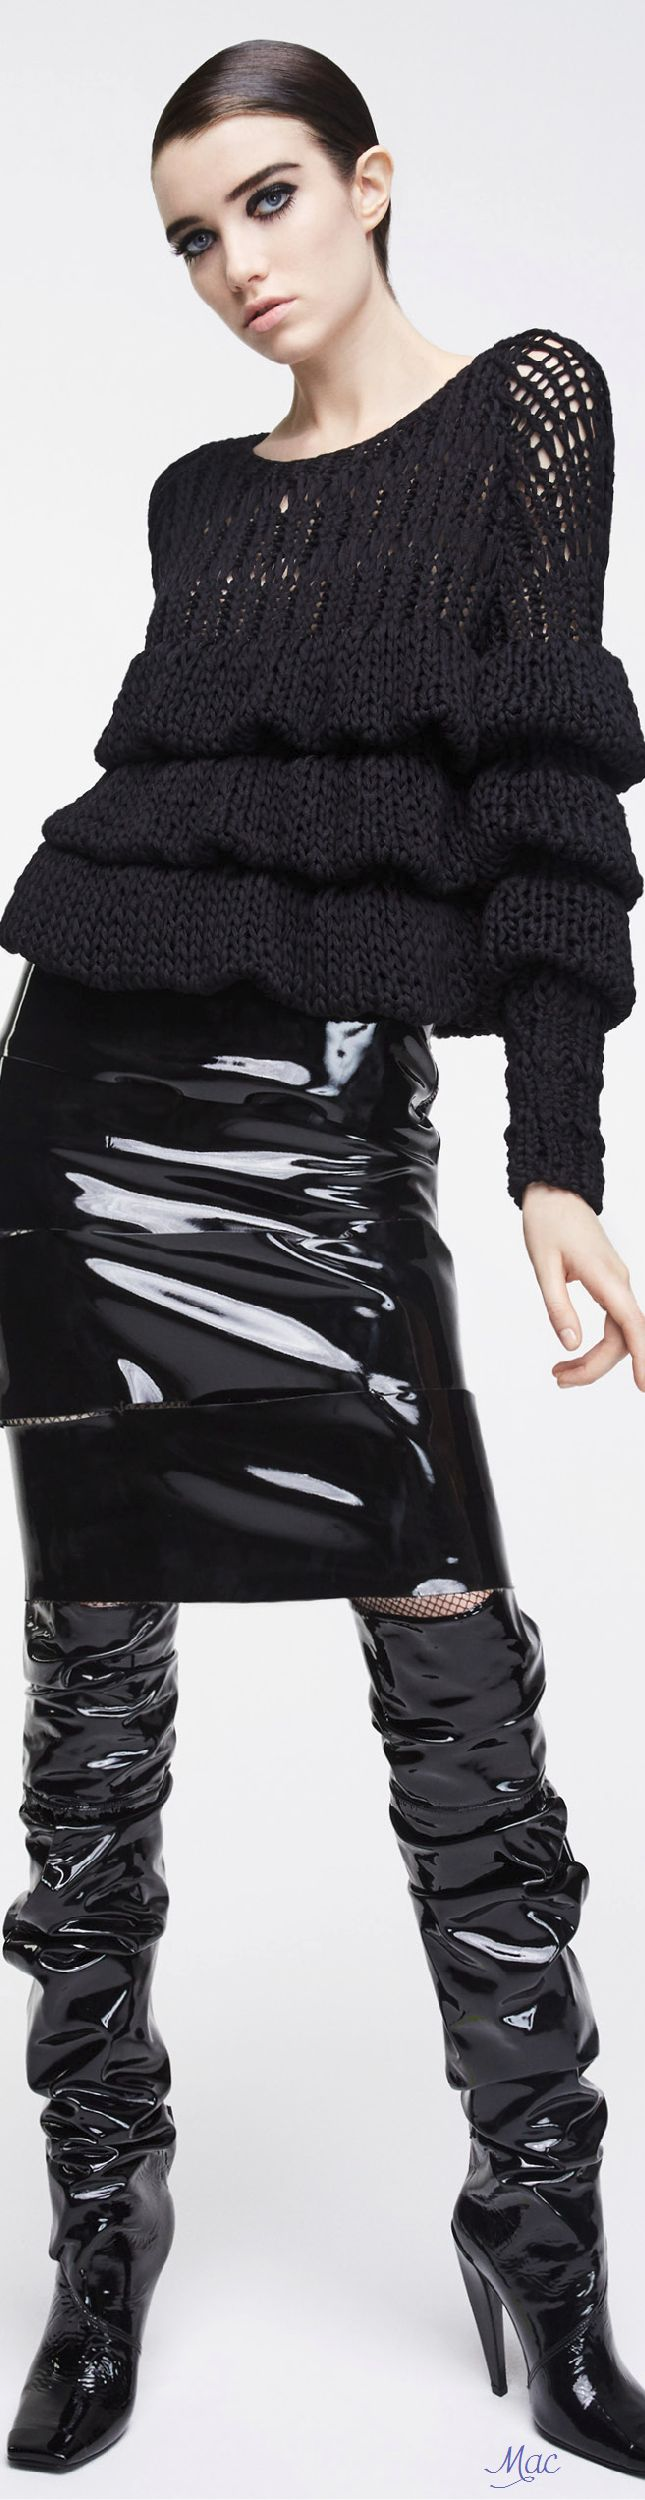 Tom Ford F-17 RTW: ruffled sweater, patent leather skirt & boots.